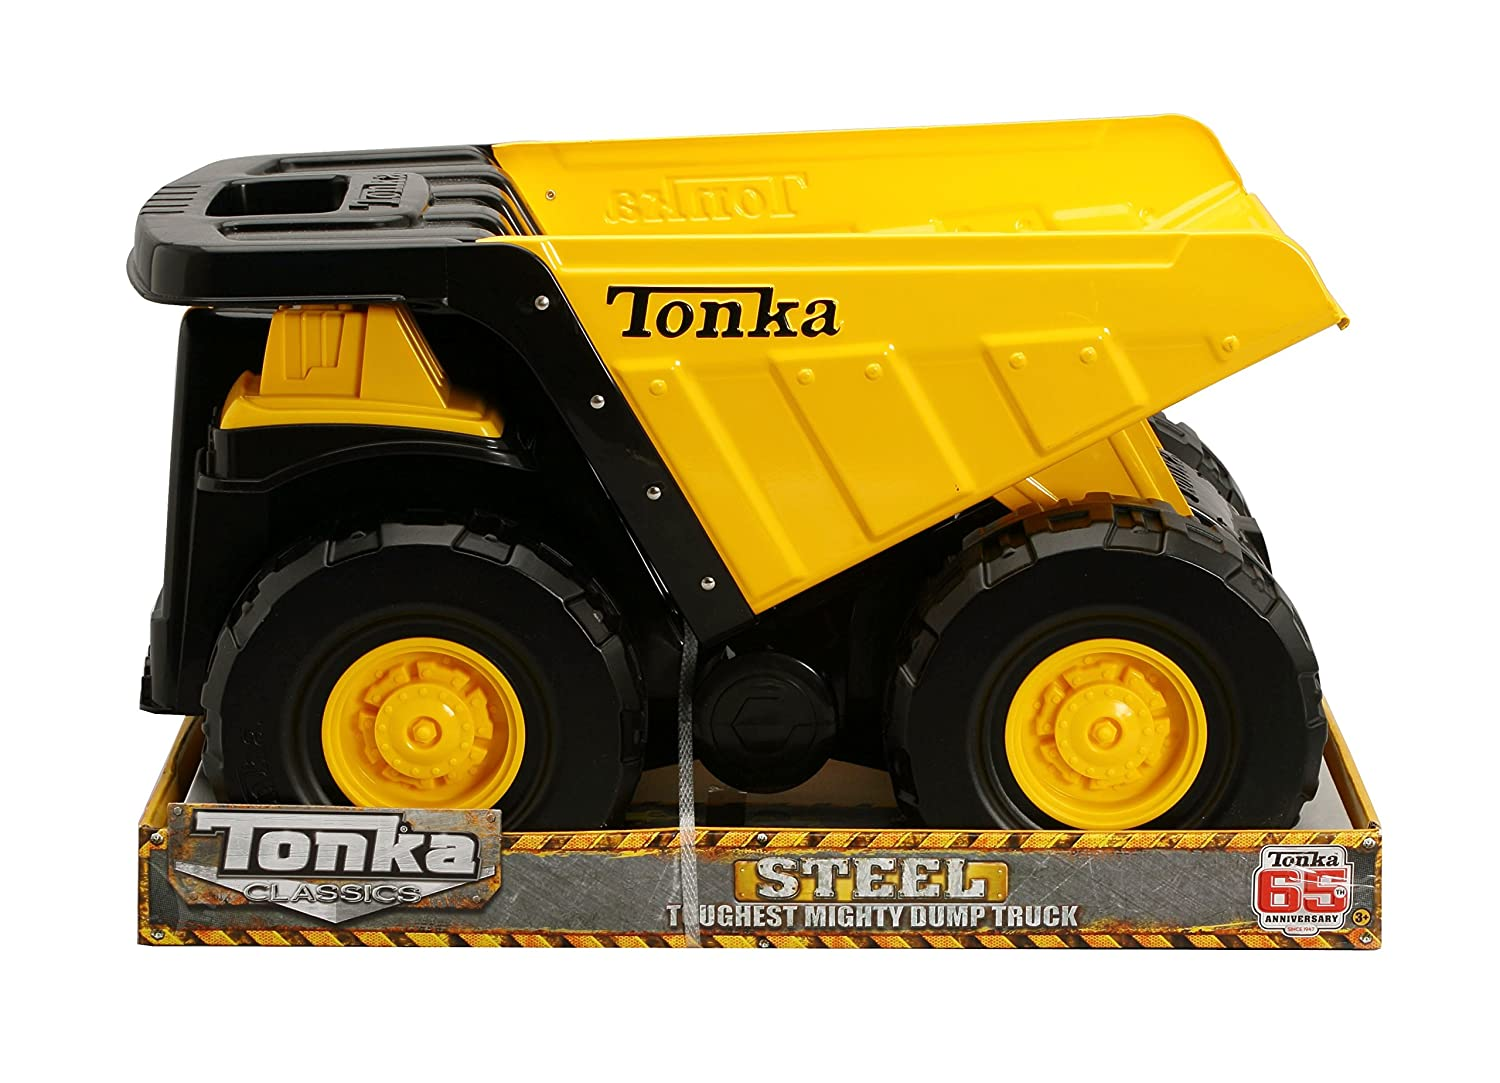 Tonka Construction Toys For Boys : Tonka toughest mighty dump truck new free shipping ebay